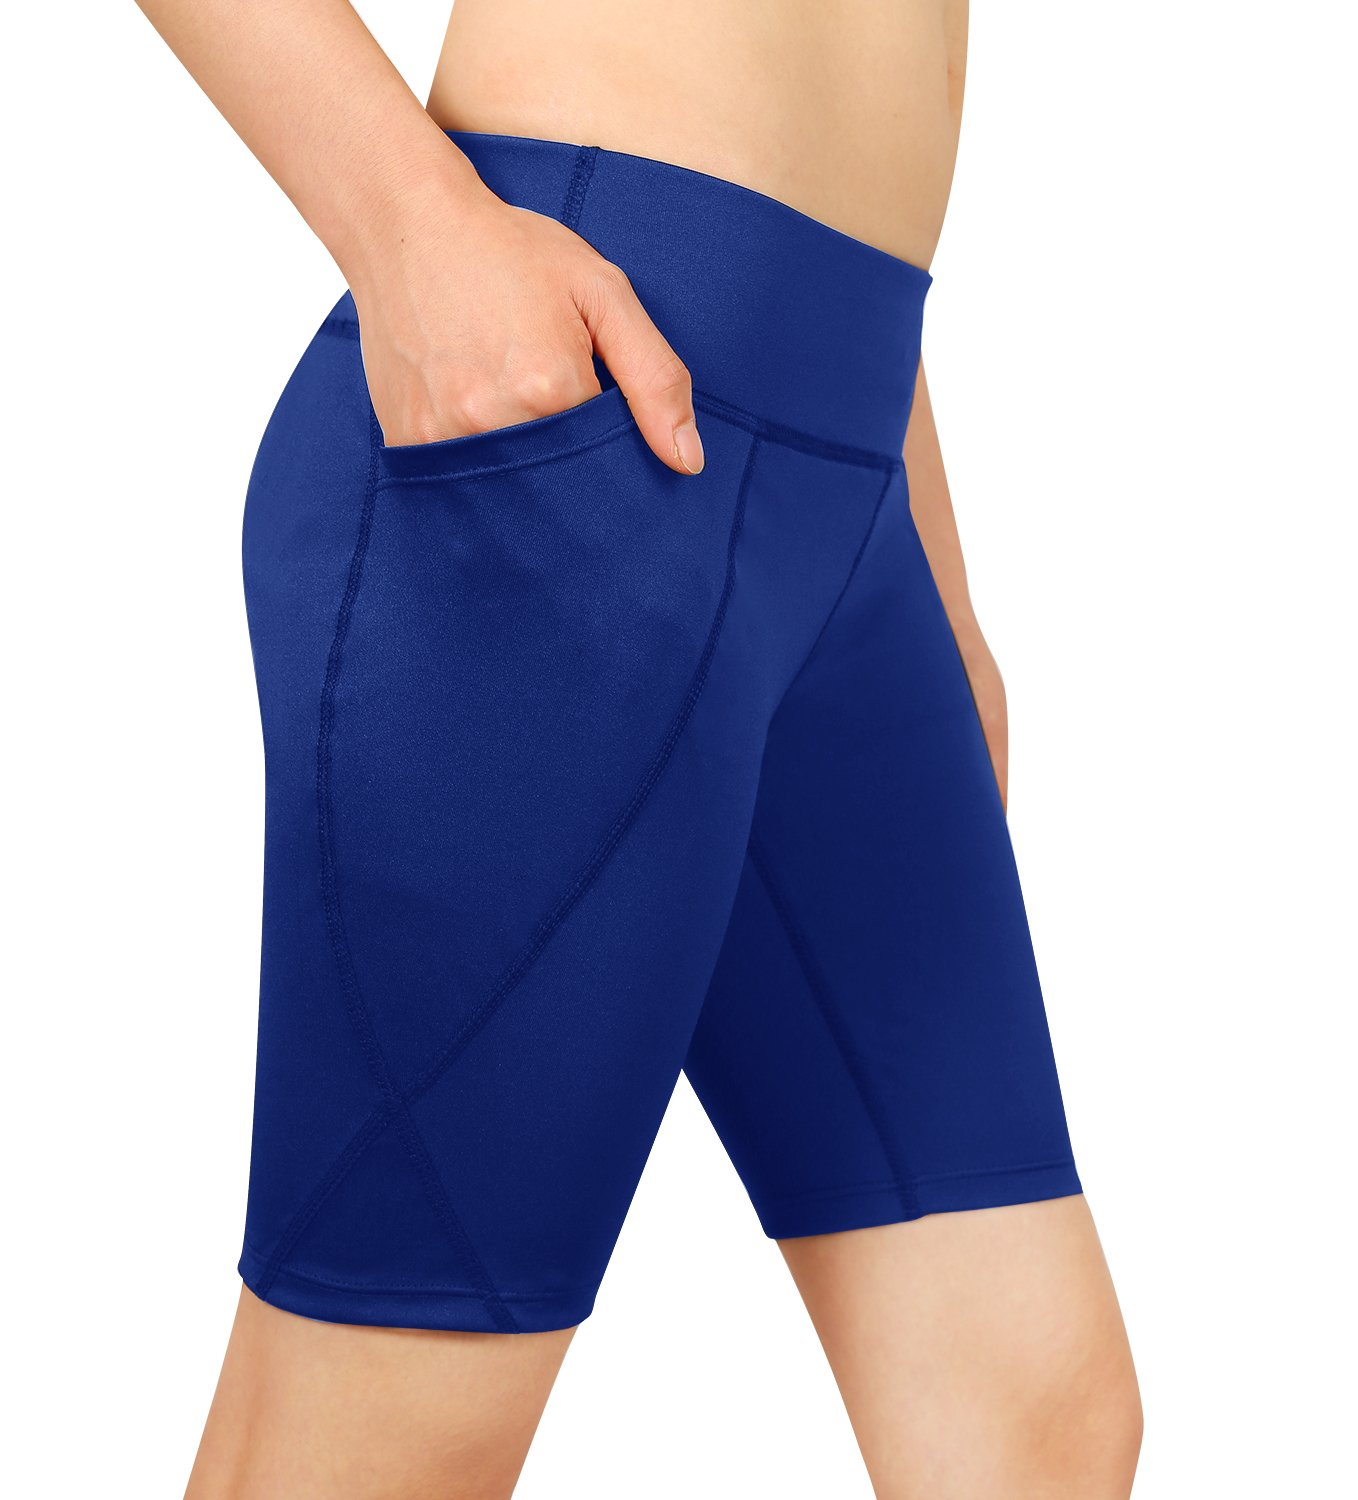 Cassiecy Damen Compression Sports Shorts Yoga Running Fitness Stretch Tights Kurze Hosen Ca11